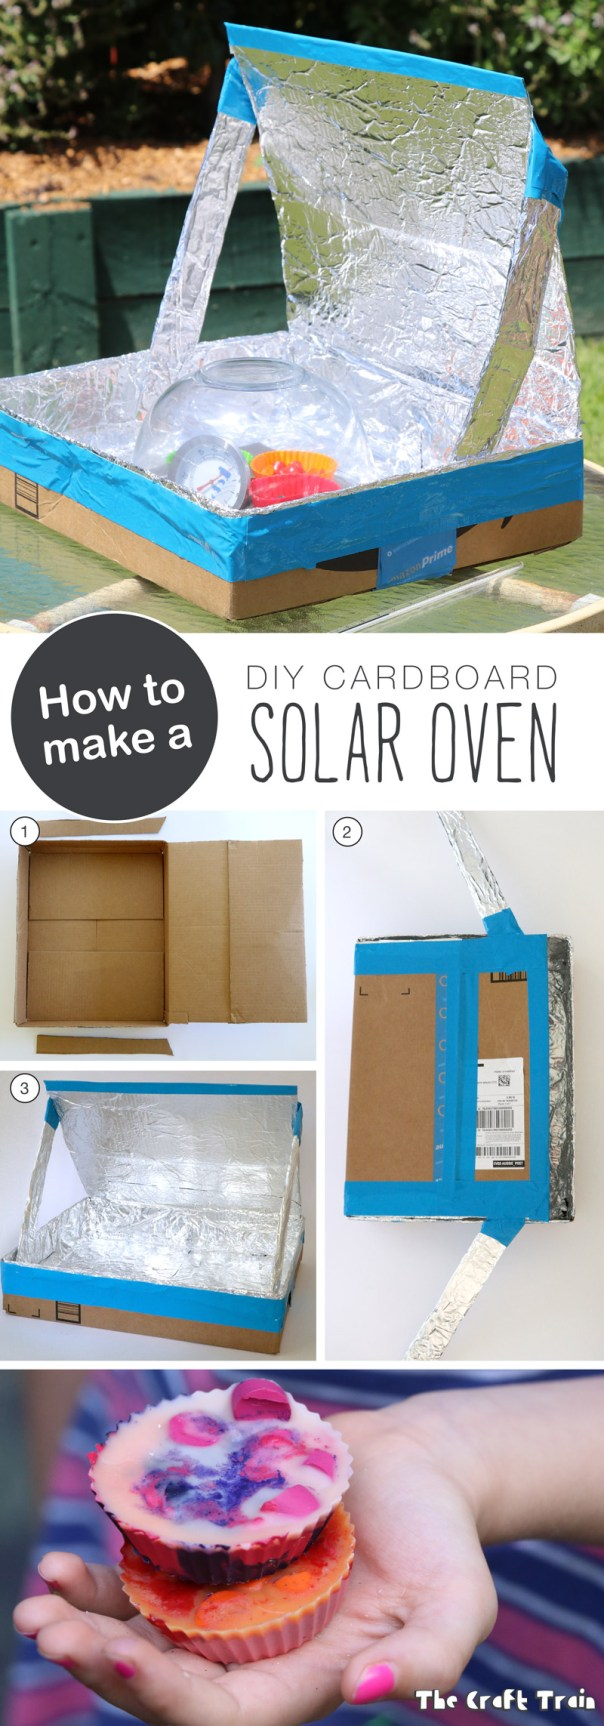 How to make a DIY Solar Oven from a repurposed cardboard box. This is a great experiment for kids to learn about solar energy and sustainability.